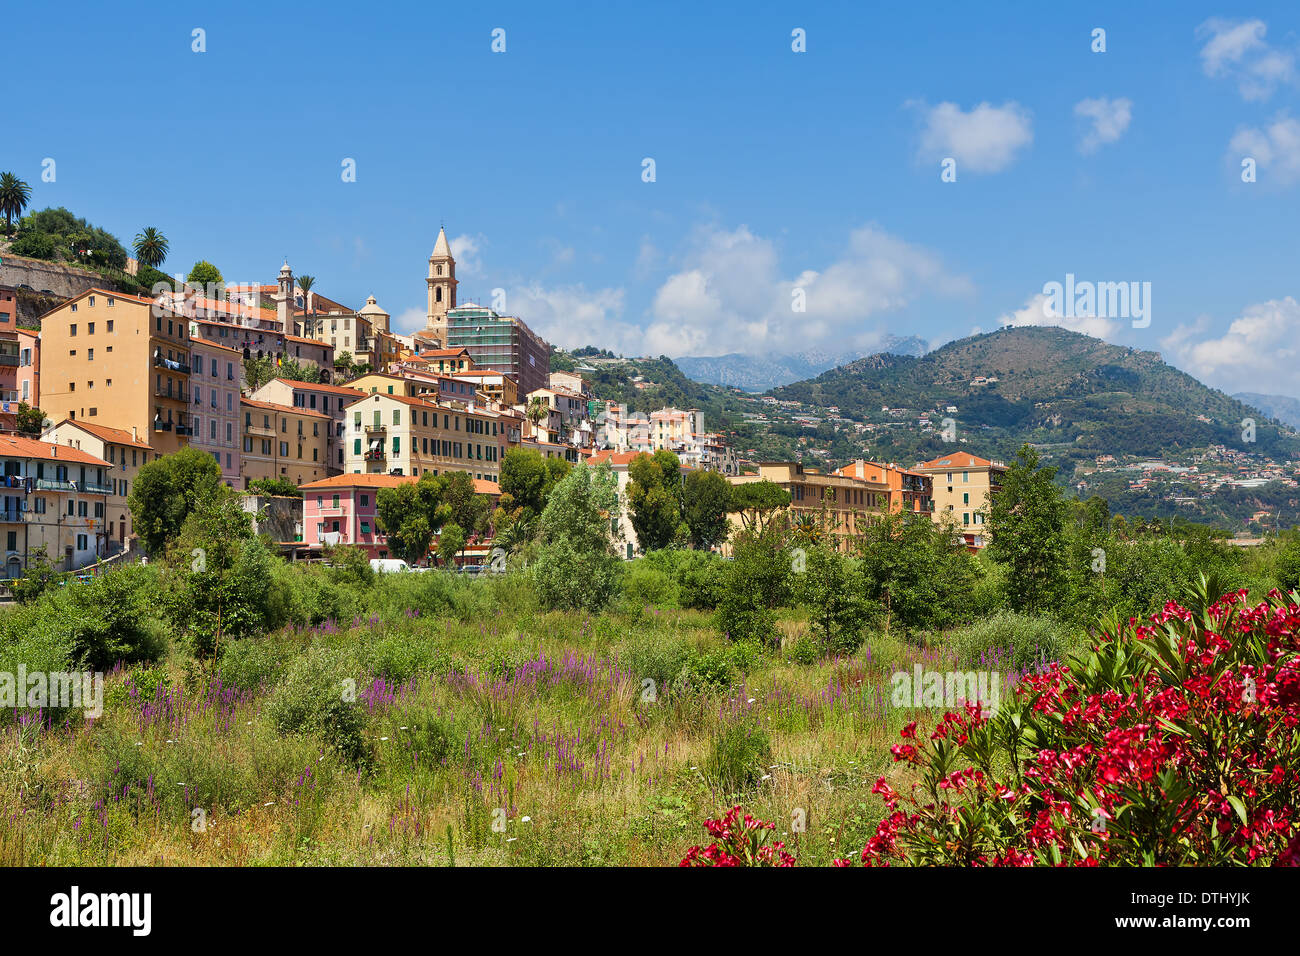 Riverbed overgrown with trees, shrubs and grass and old town of Ventimiglia under blue sky in Italy. - Stock Image